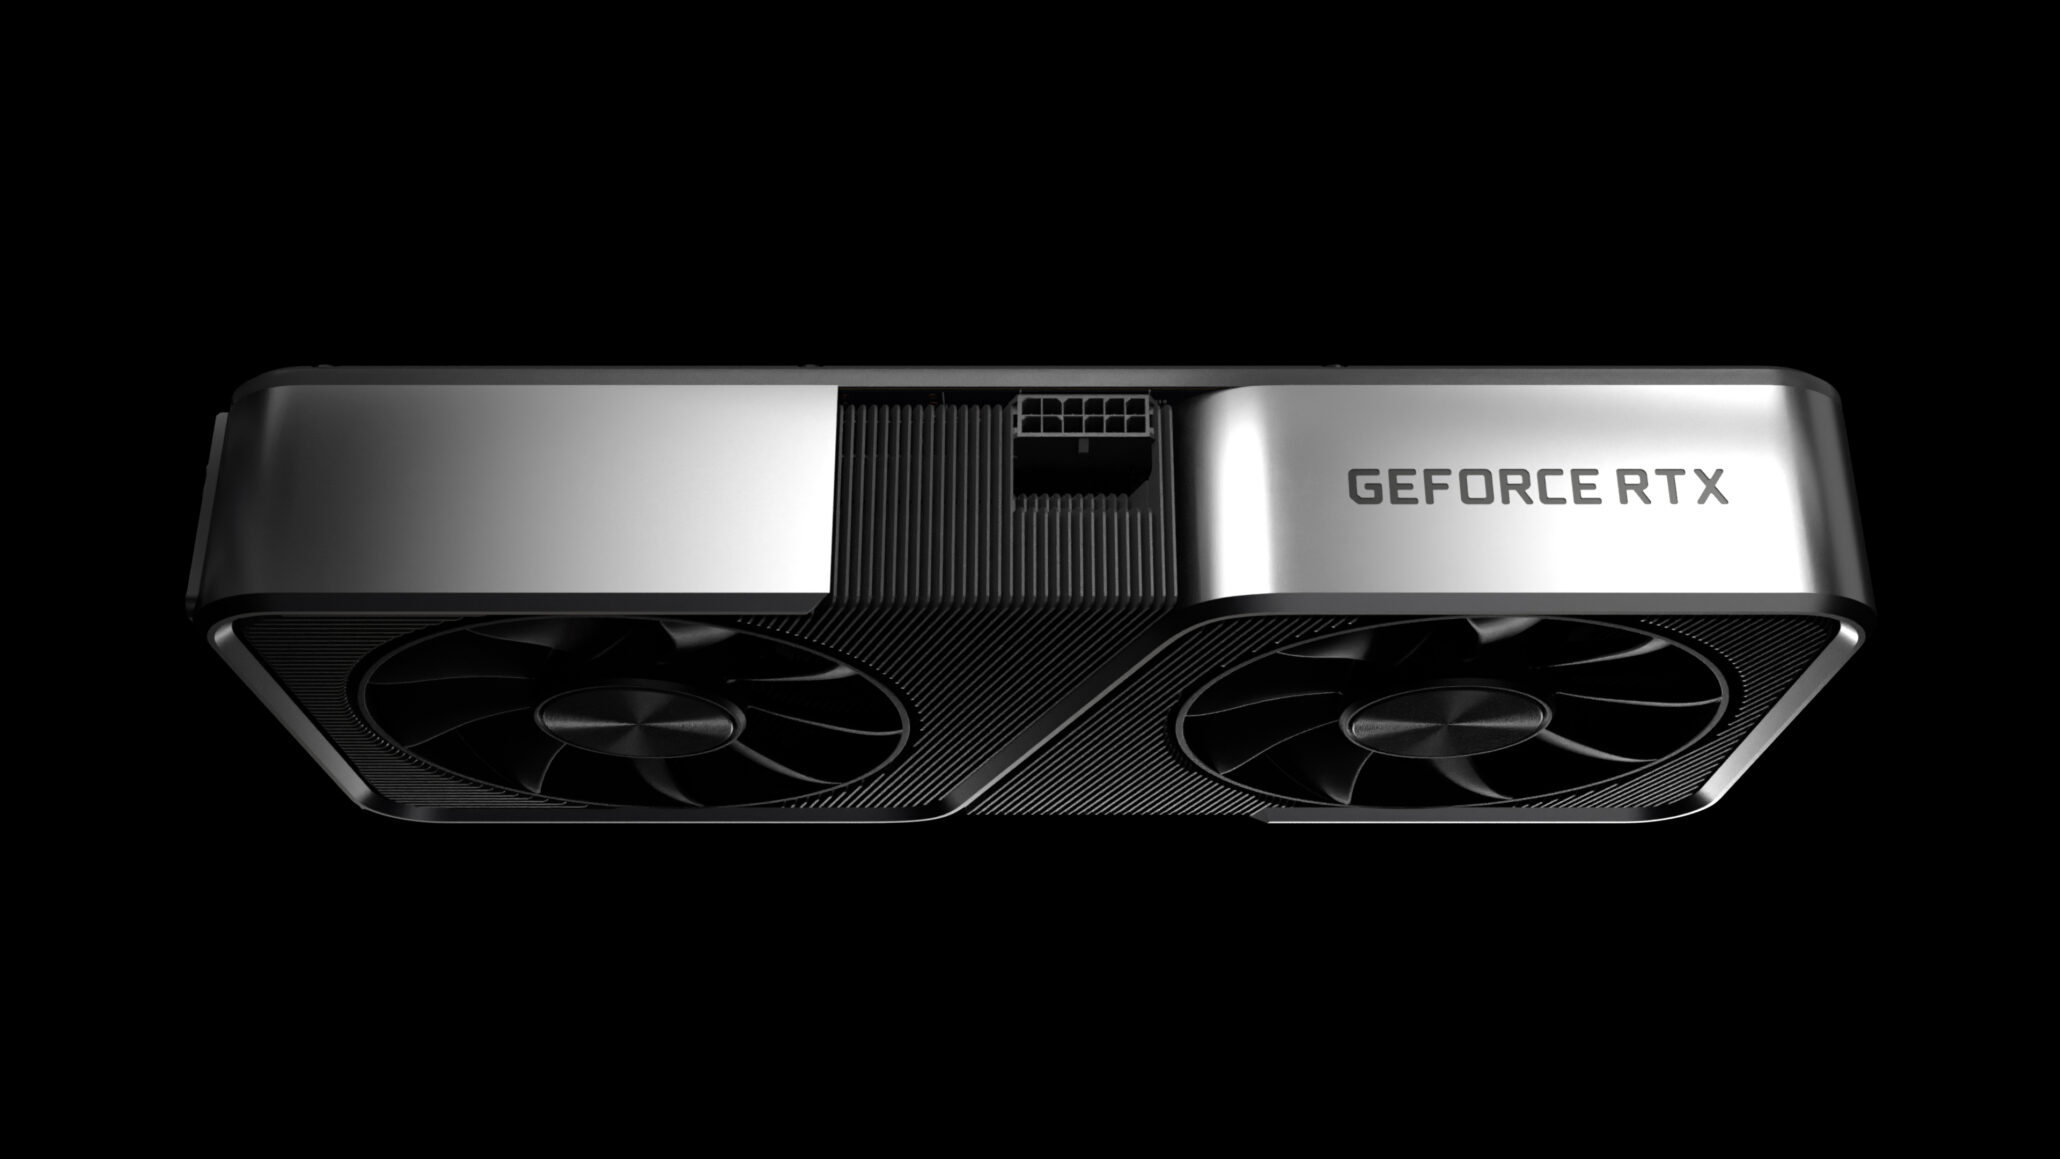 geforce-rtx-3070-product-gallery-full-screen-3840-2